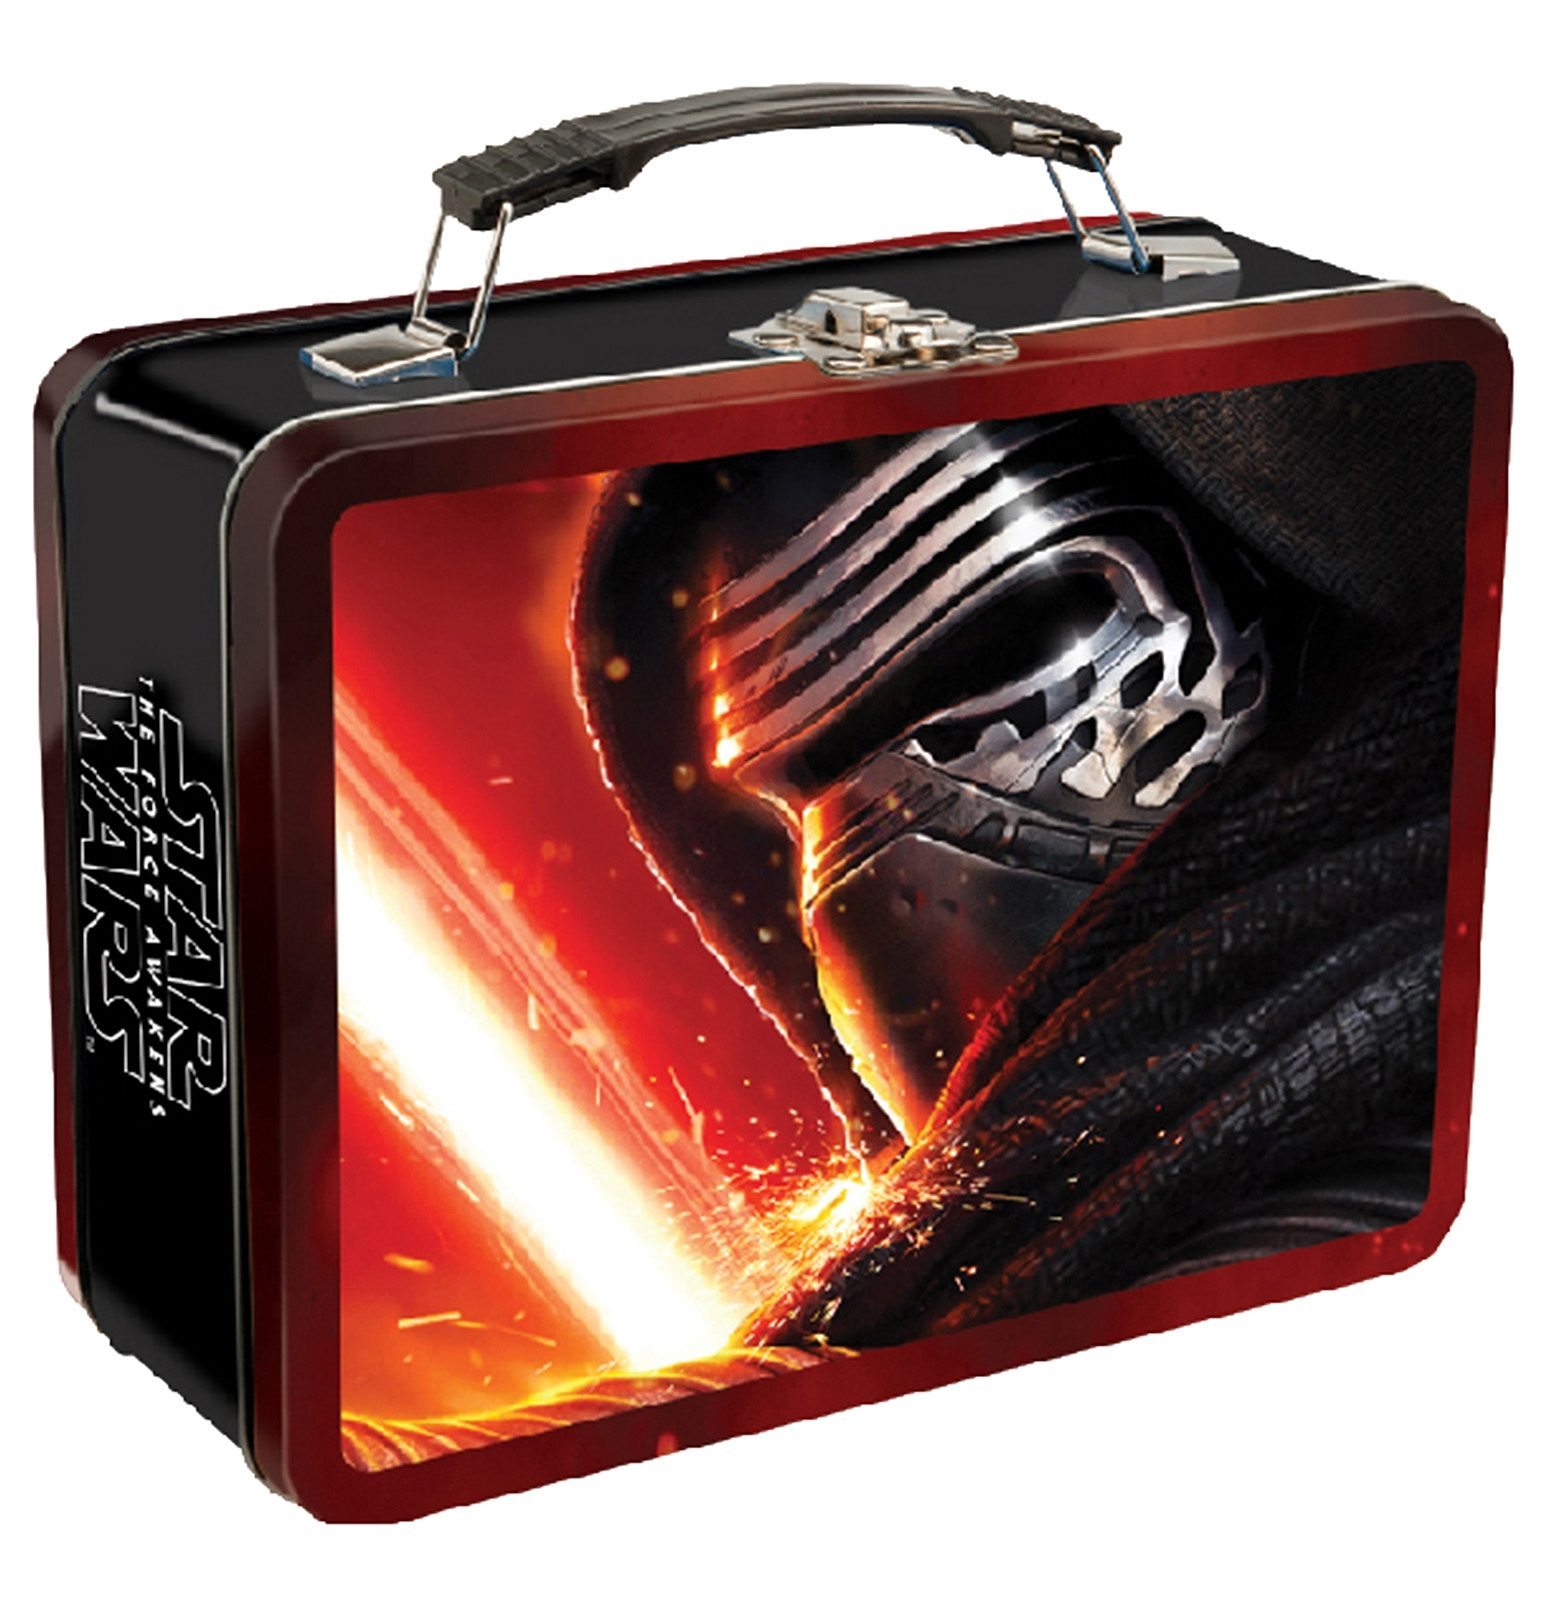 JOY TOY Sammelkoffer, »Disney Star Wars™ Metallkoffer«